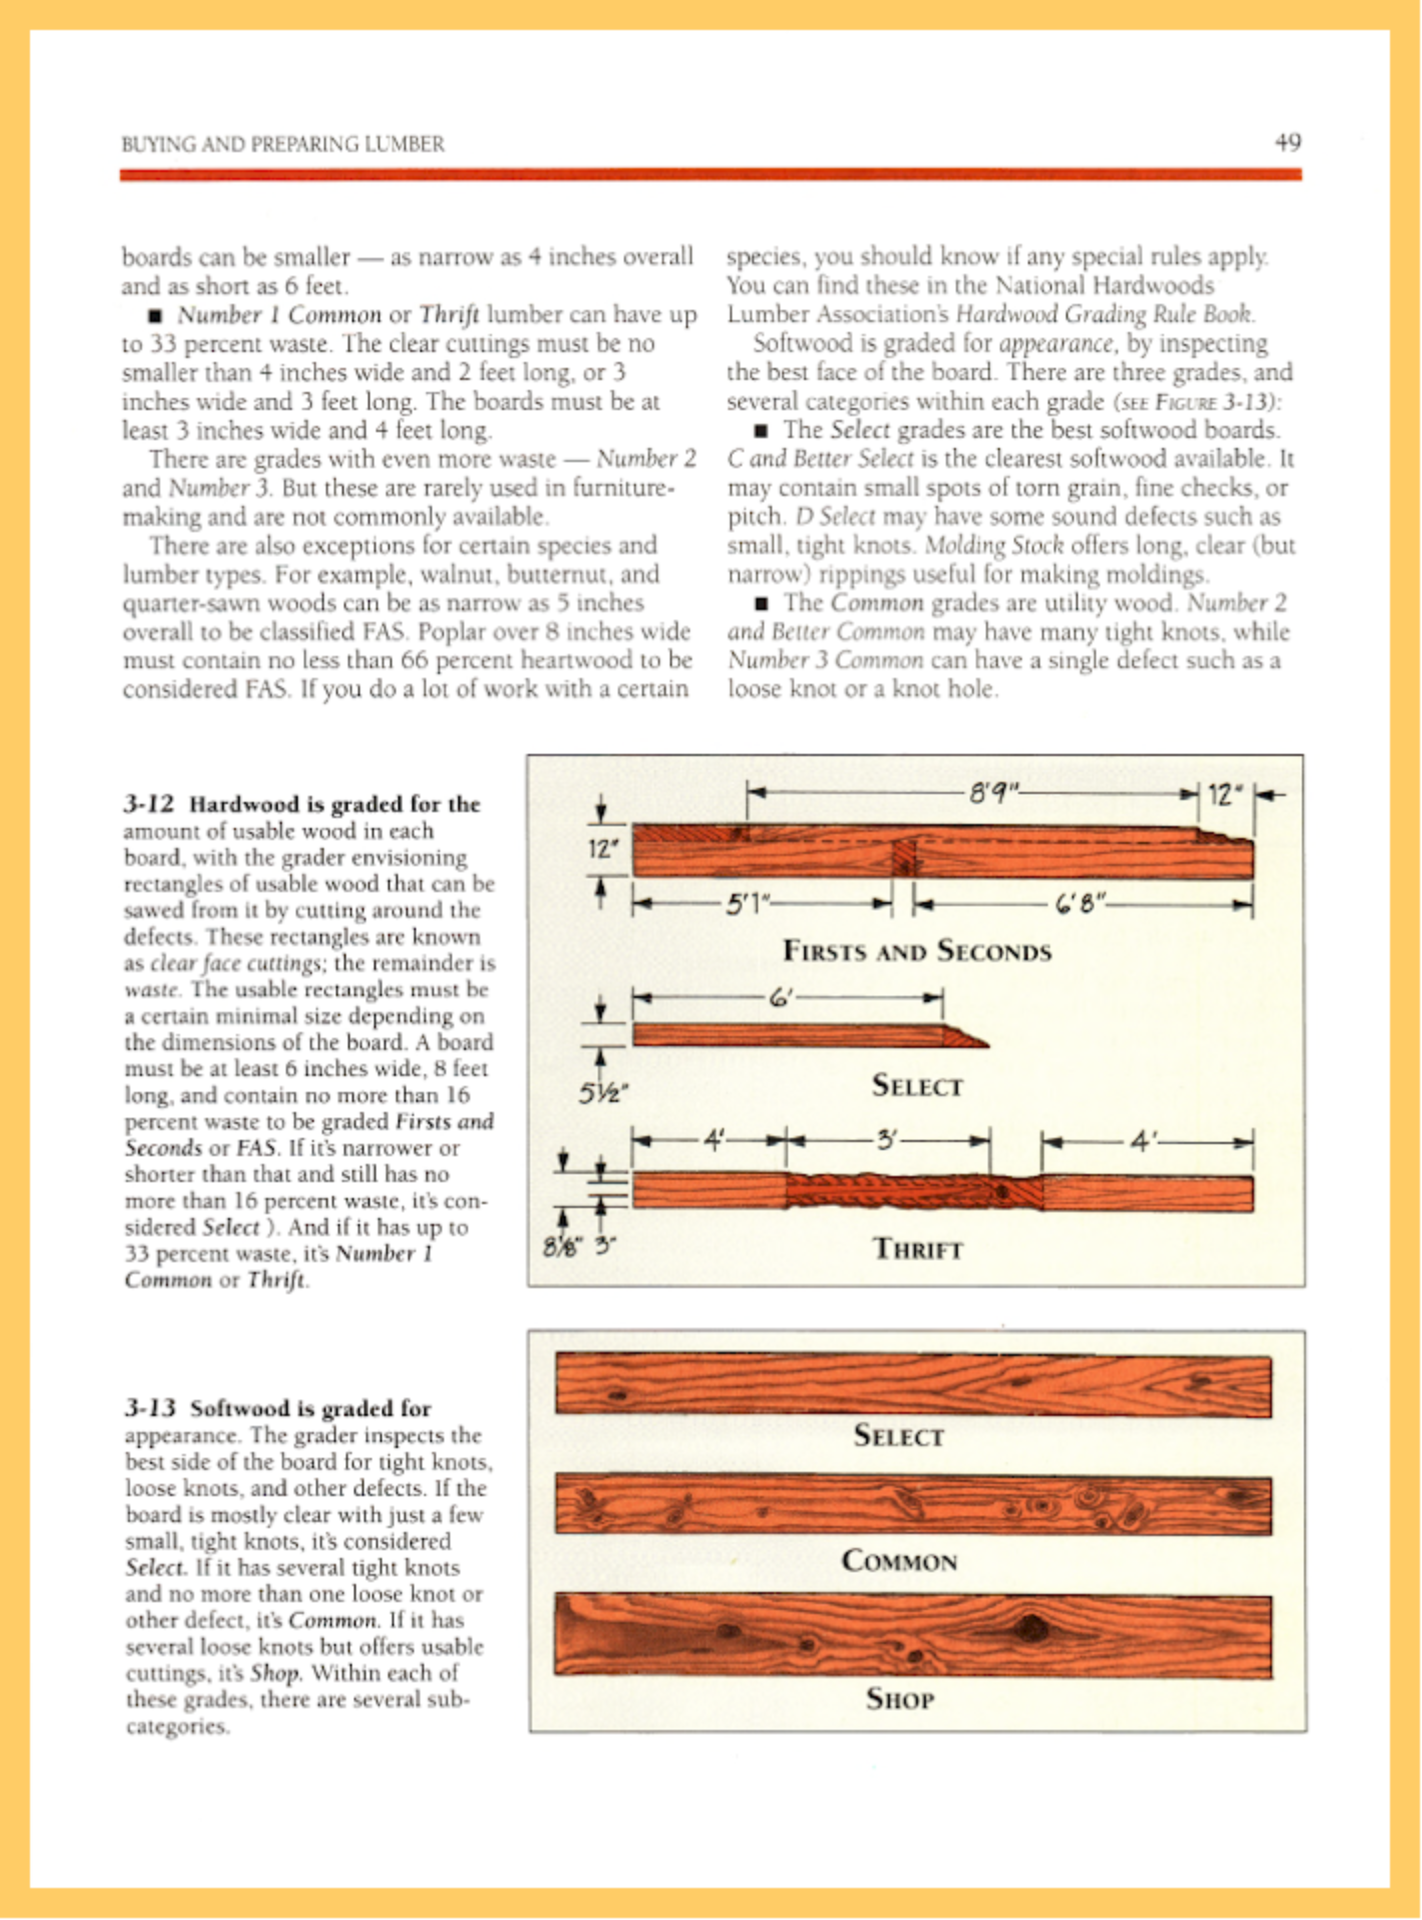 Wood and Woodworking Materials